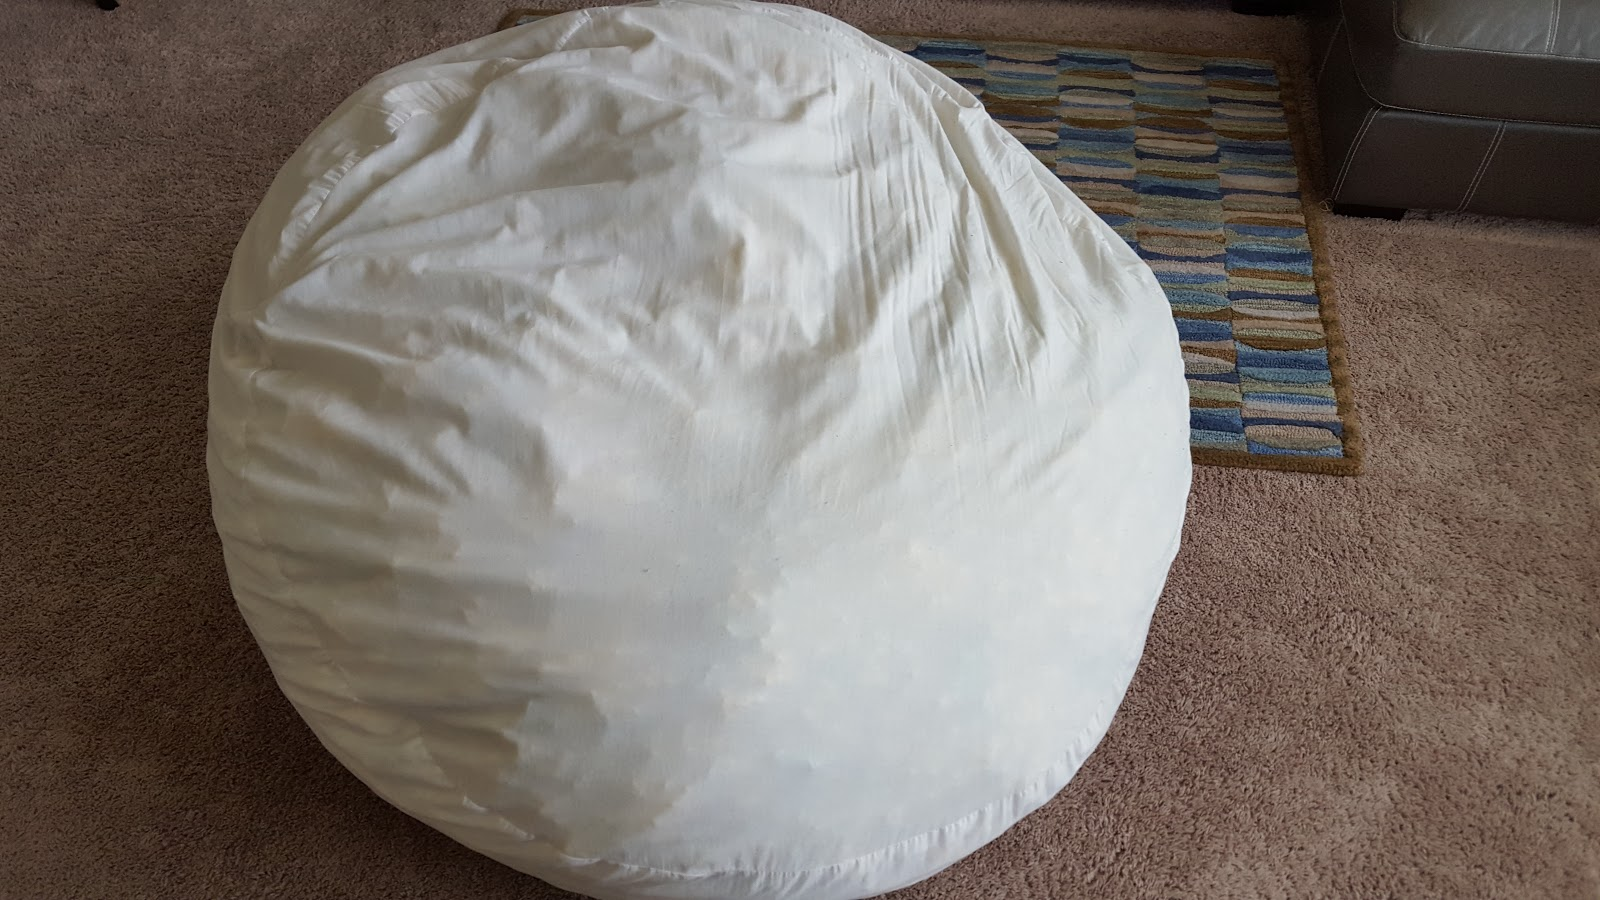 How To Sew Bean Bag Chair Light Blue Giant Tutorial So Much Make Once The Insert Is Filled Pin It Closed Then Up Or Zip If You Made Your With A Zipper